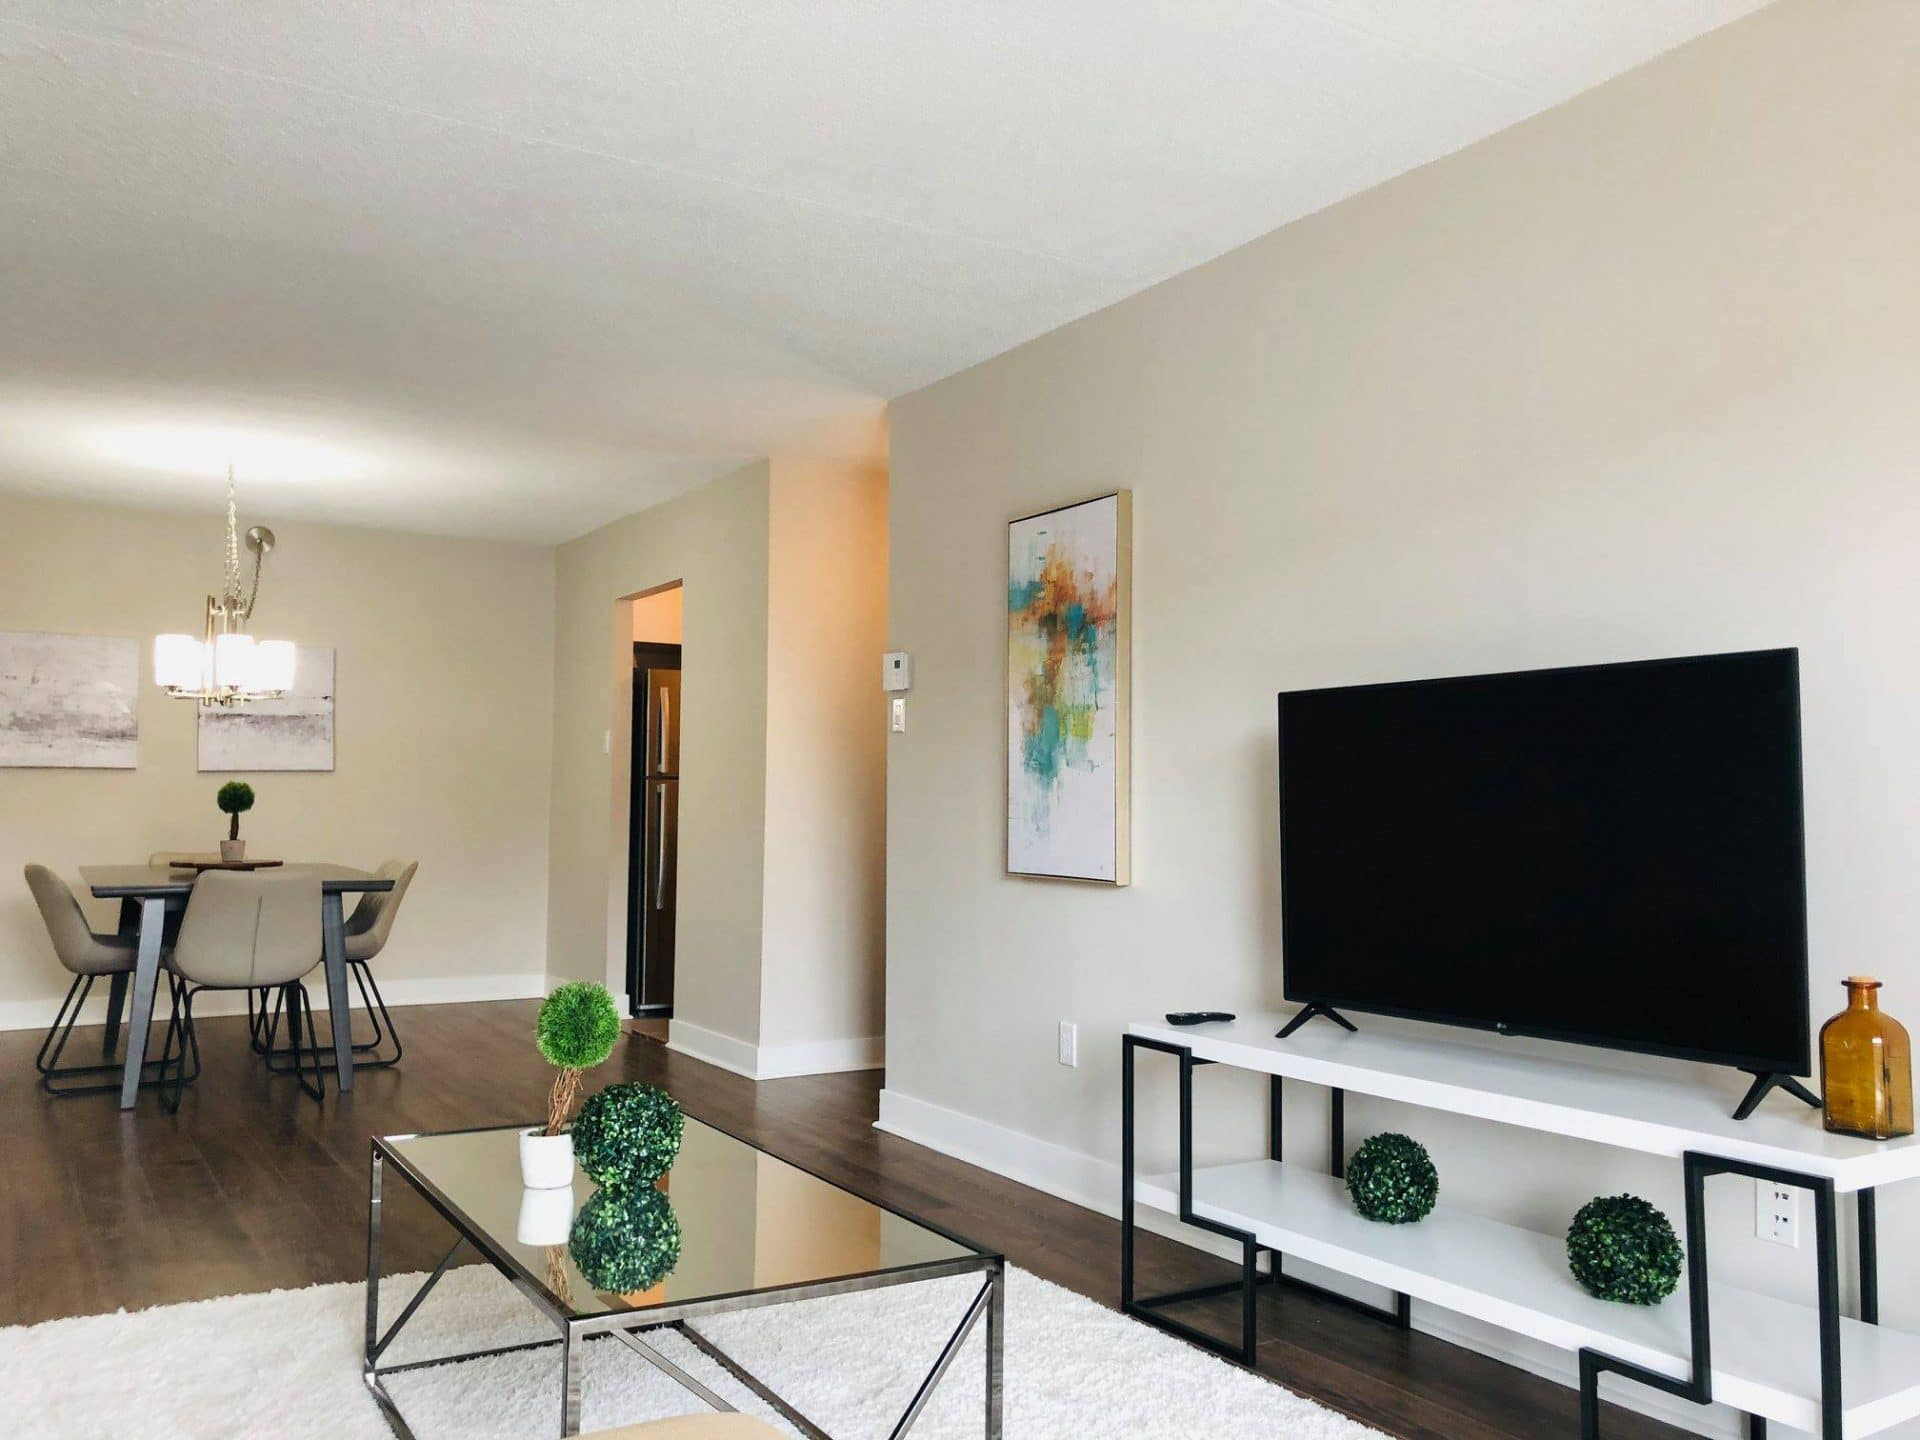 Residence Vanier - Appartement pour personnes agees - 002